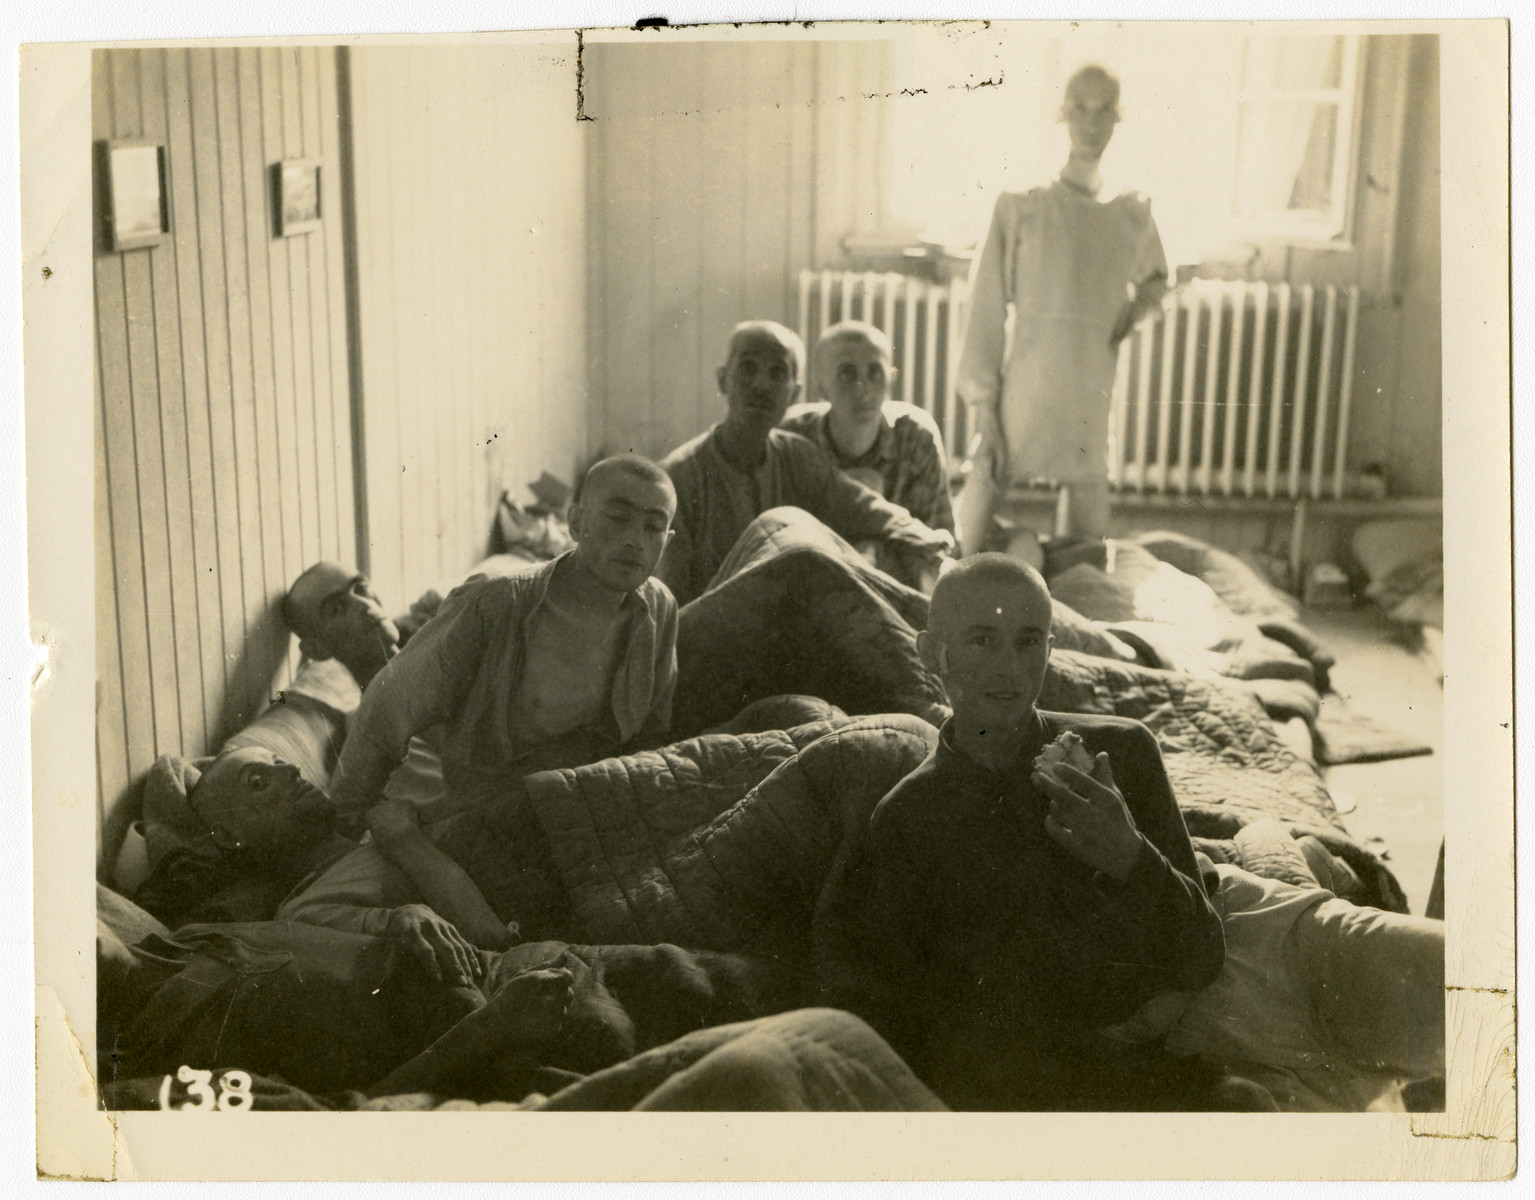 Survivors of the Buchenwald concentration camp recuperate inside a building [perhaps a makeshift hospital] following liberation.